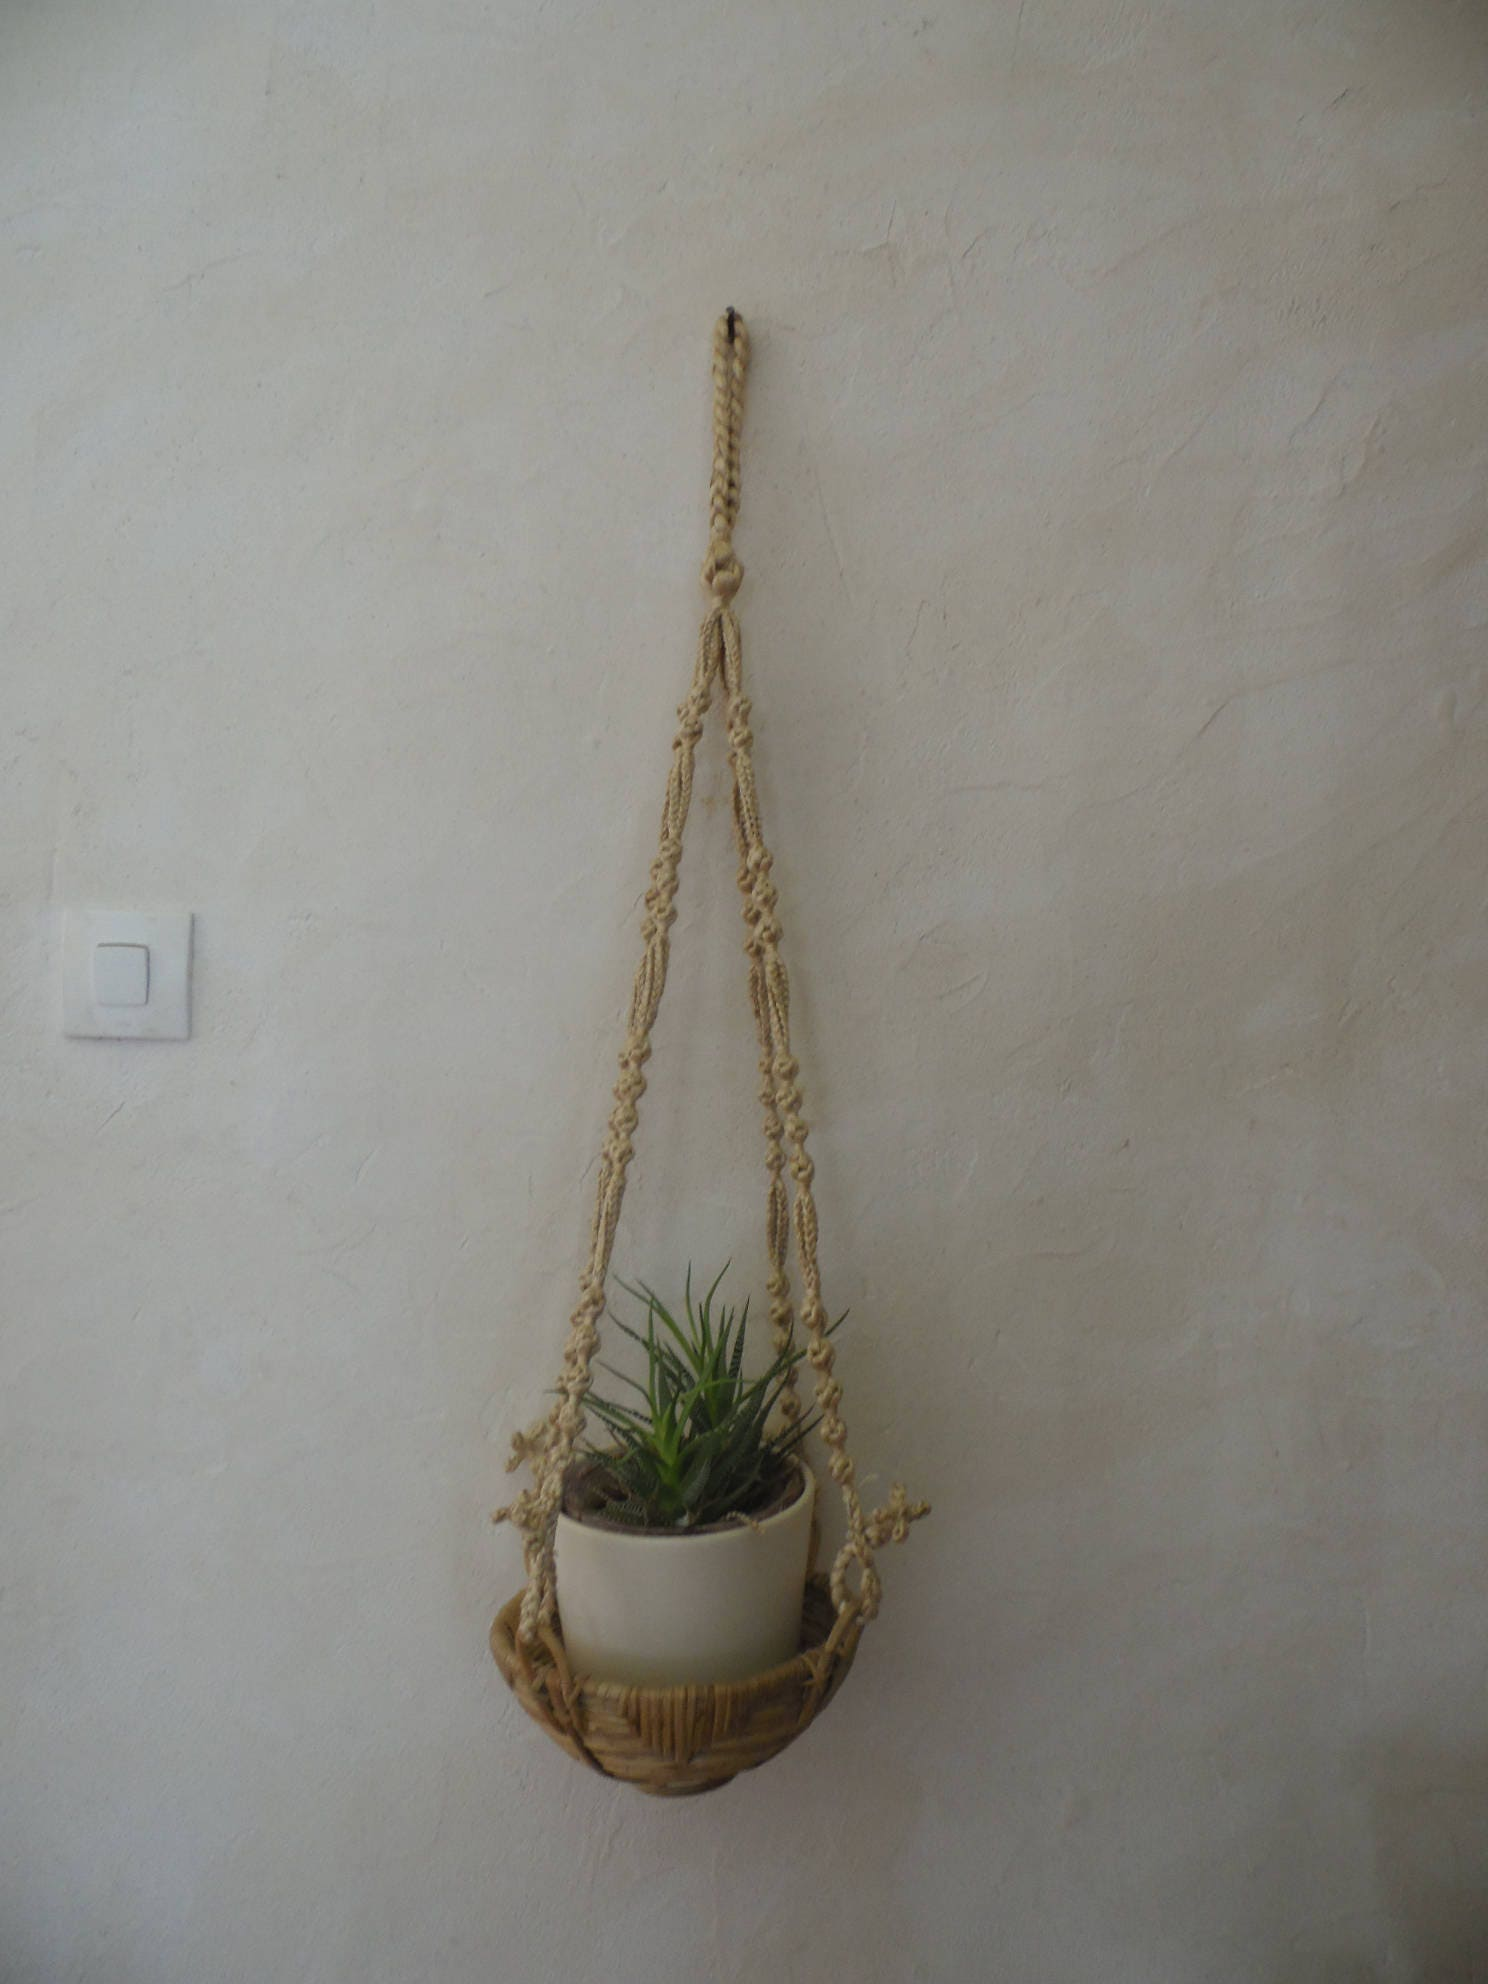 Straw Flower Hanging Baskets : Hanging macrame straw basket woven ethnic style worn plant